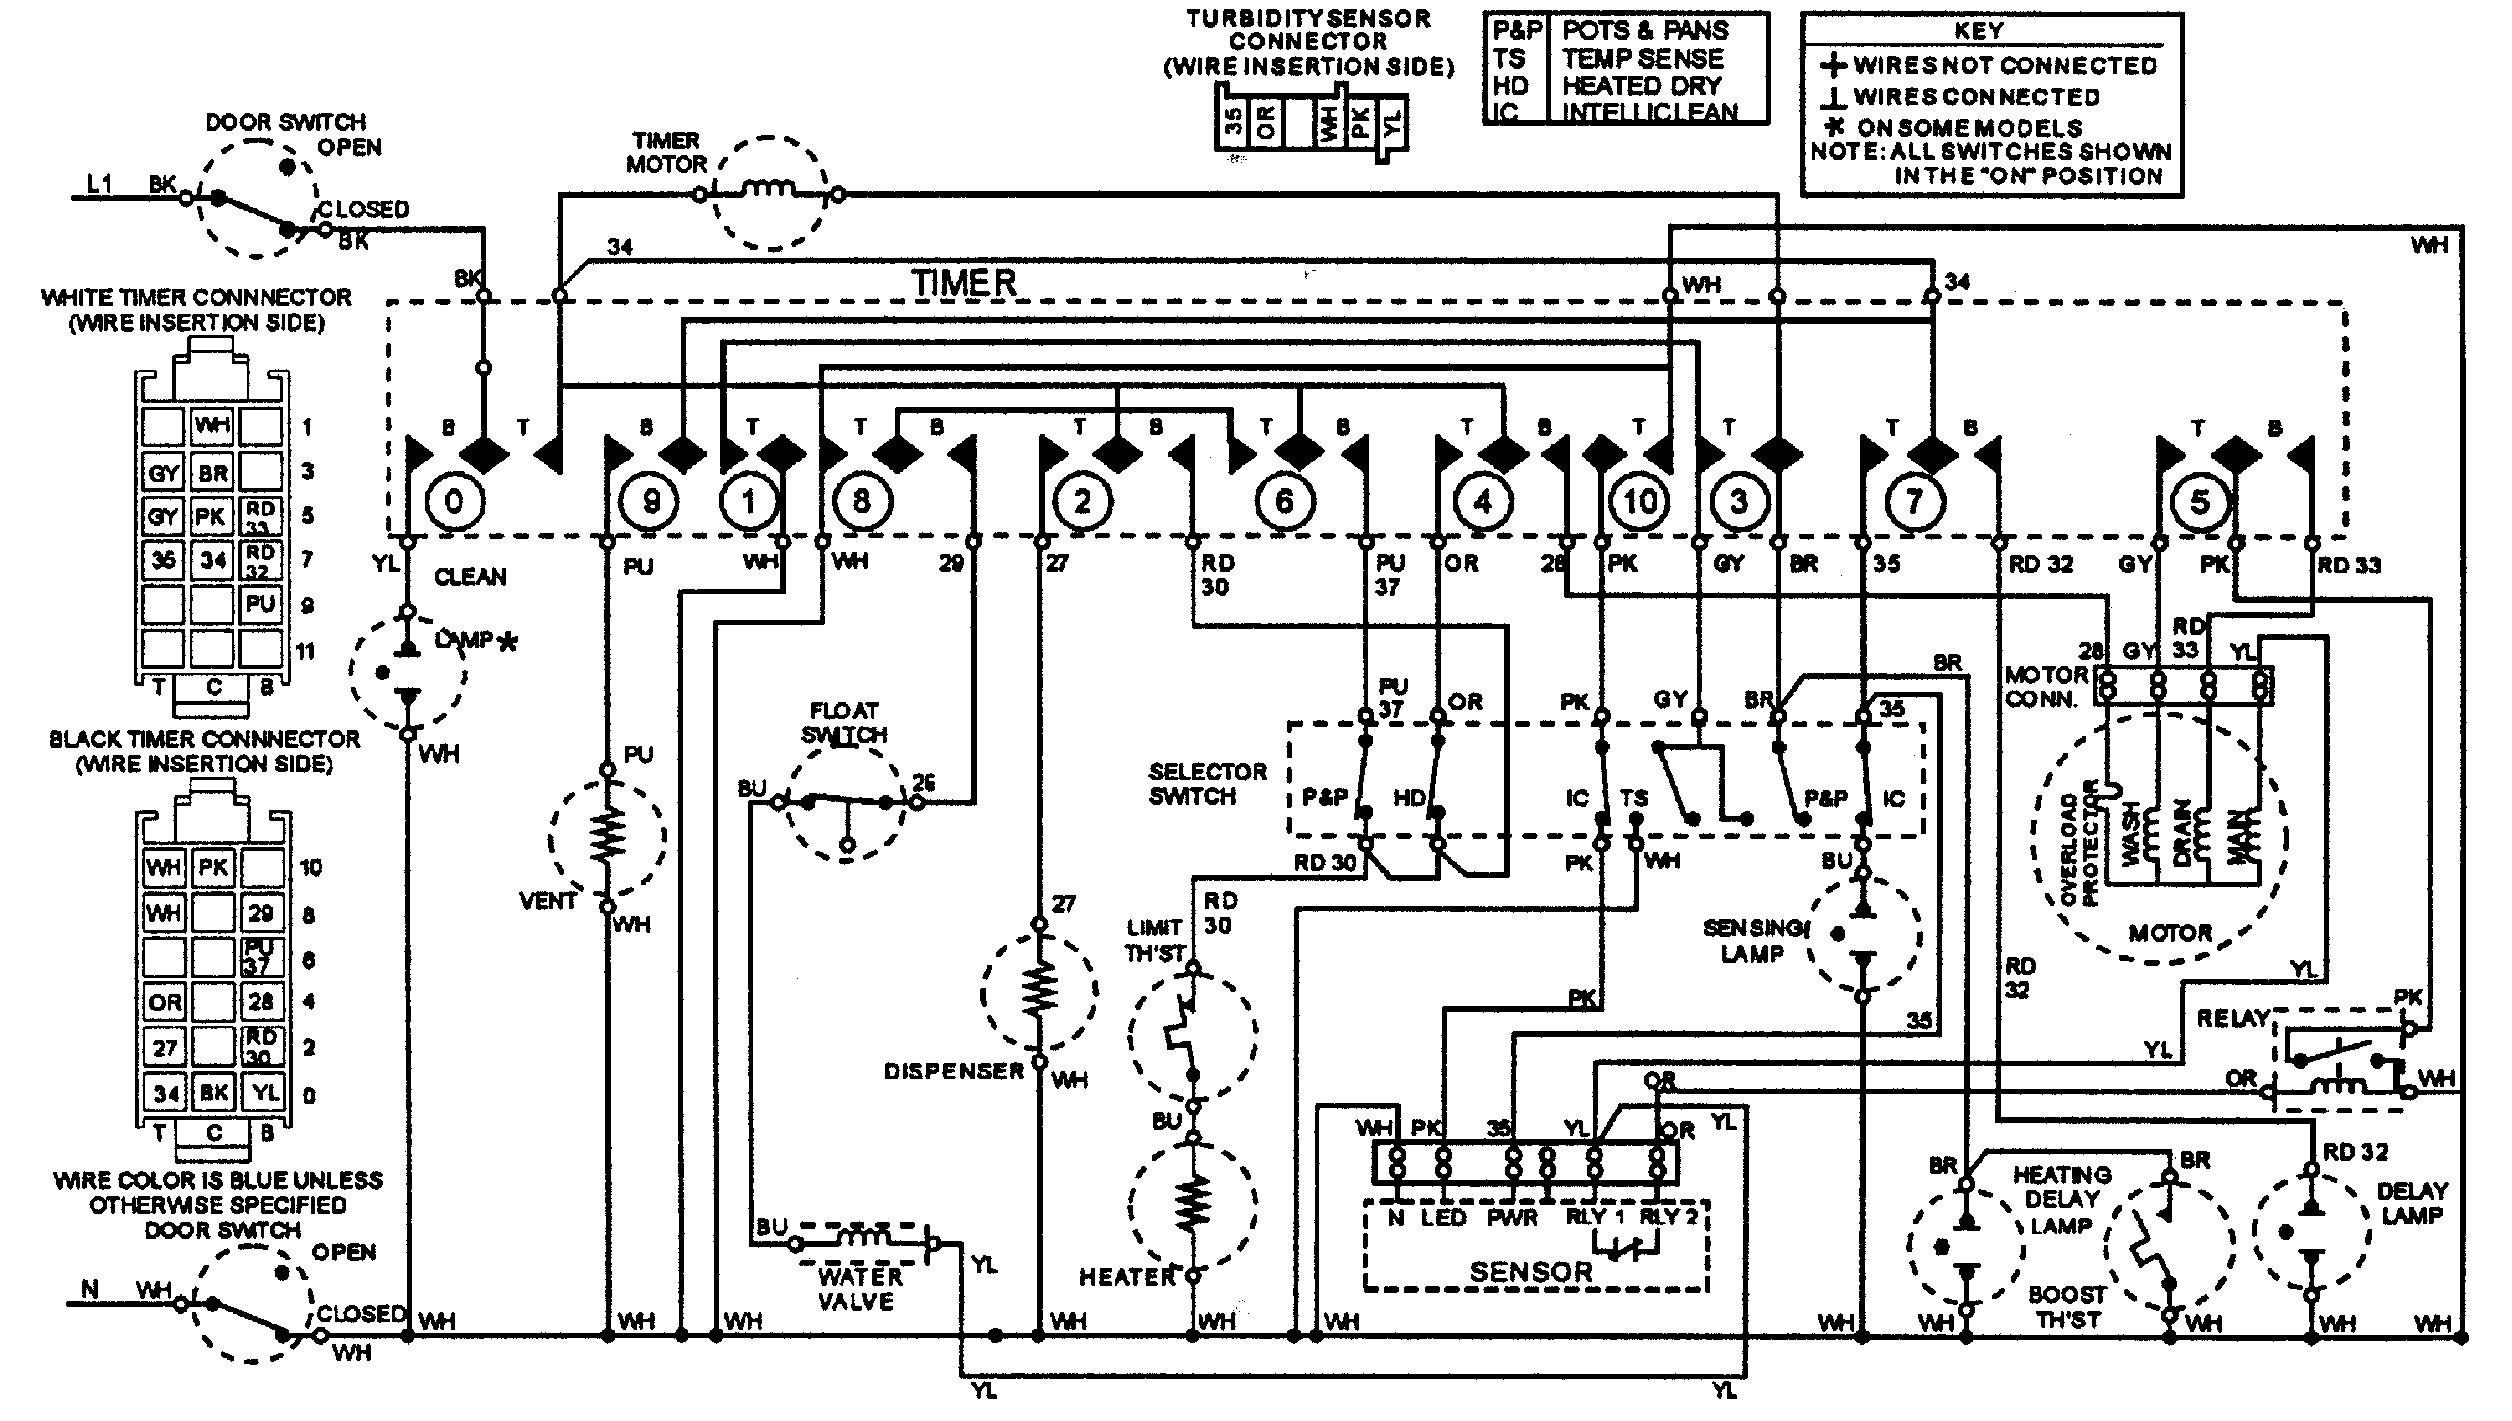 Diode Circuit Diagrams For Maytag Dishwasher - Car Wiring Diagrams ...